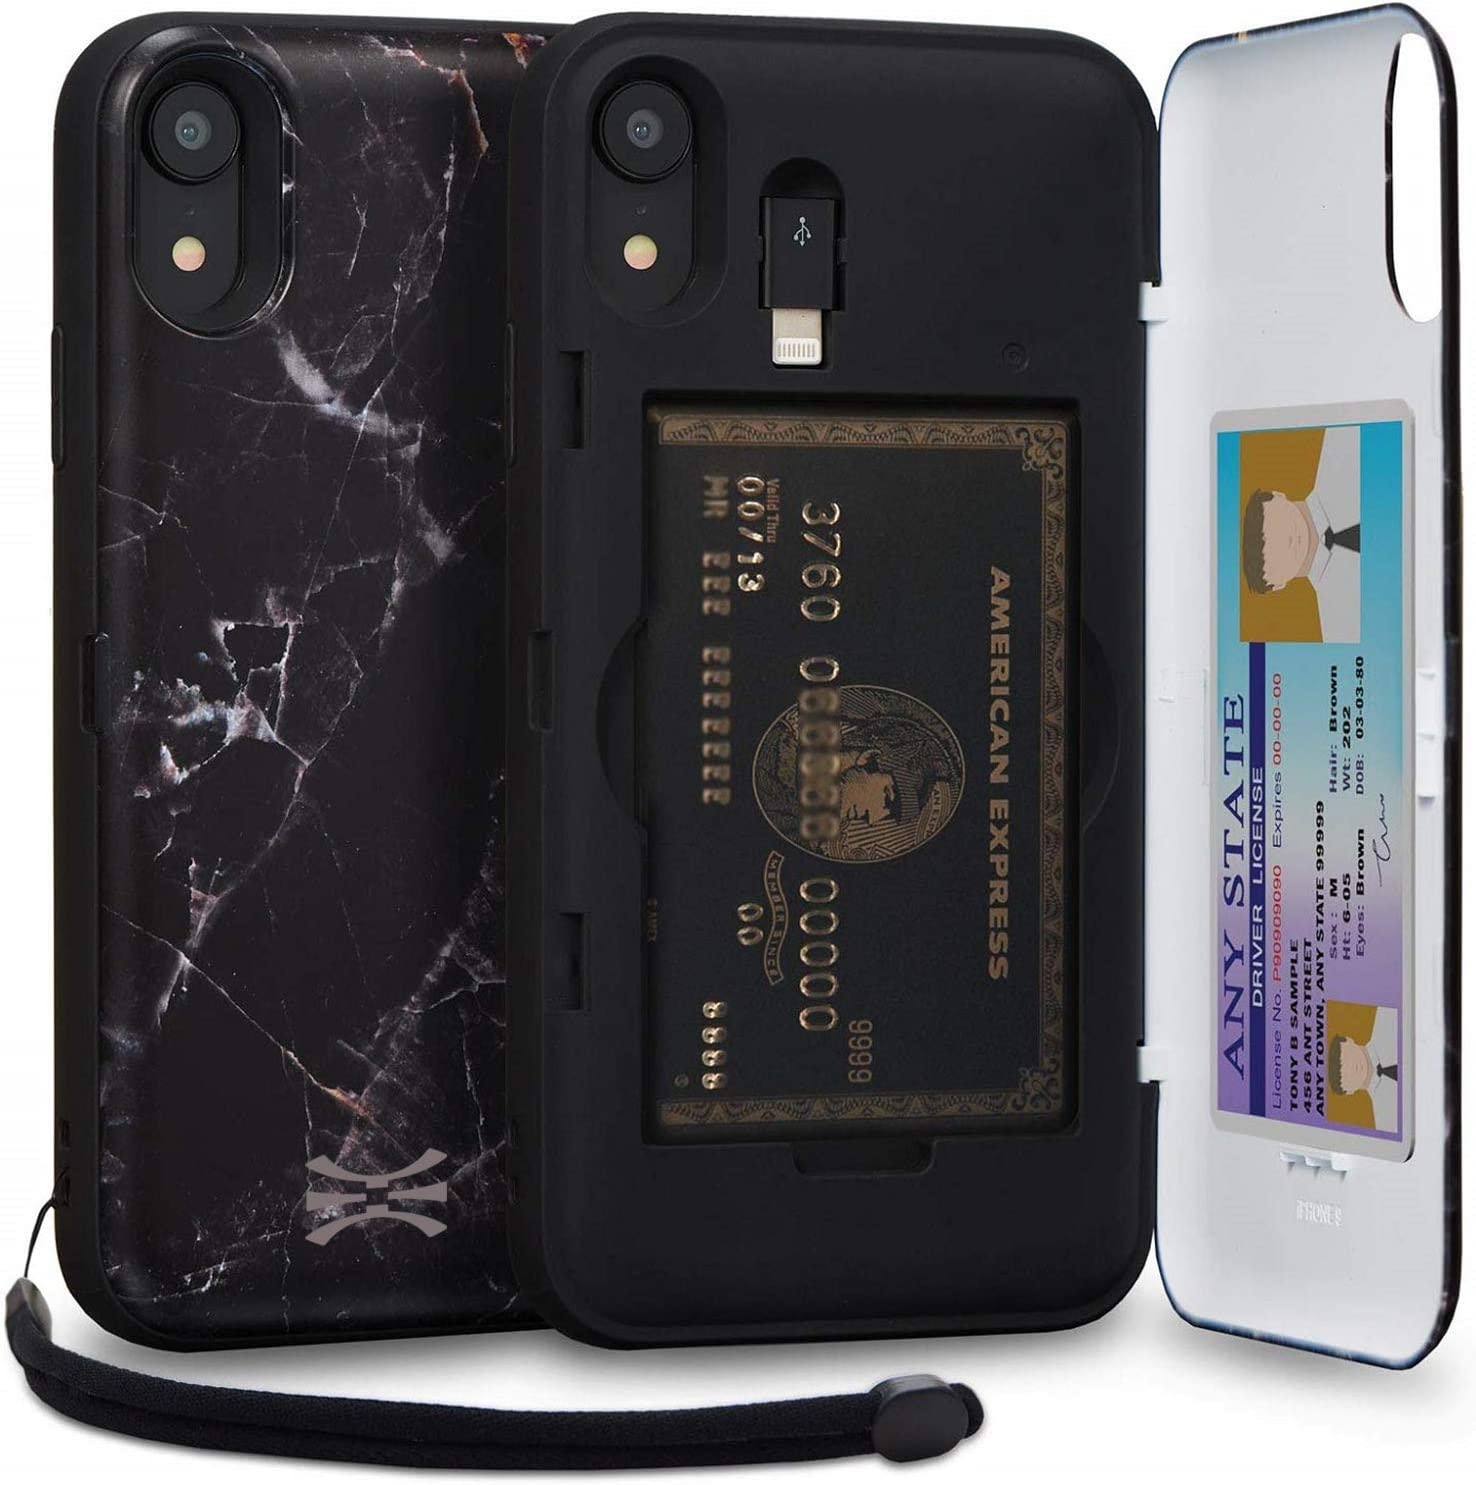 TORU CX PRO iPhone XR Wallet Case Pattern with Hidden Credit Card Holder ID Slot Hard Cover, Strap, Mirror & Lightning Adapter for Apple iPhone XR (2018) - Black Marble